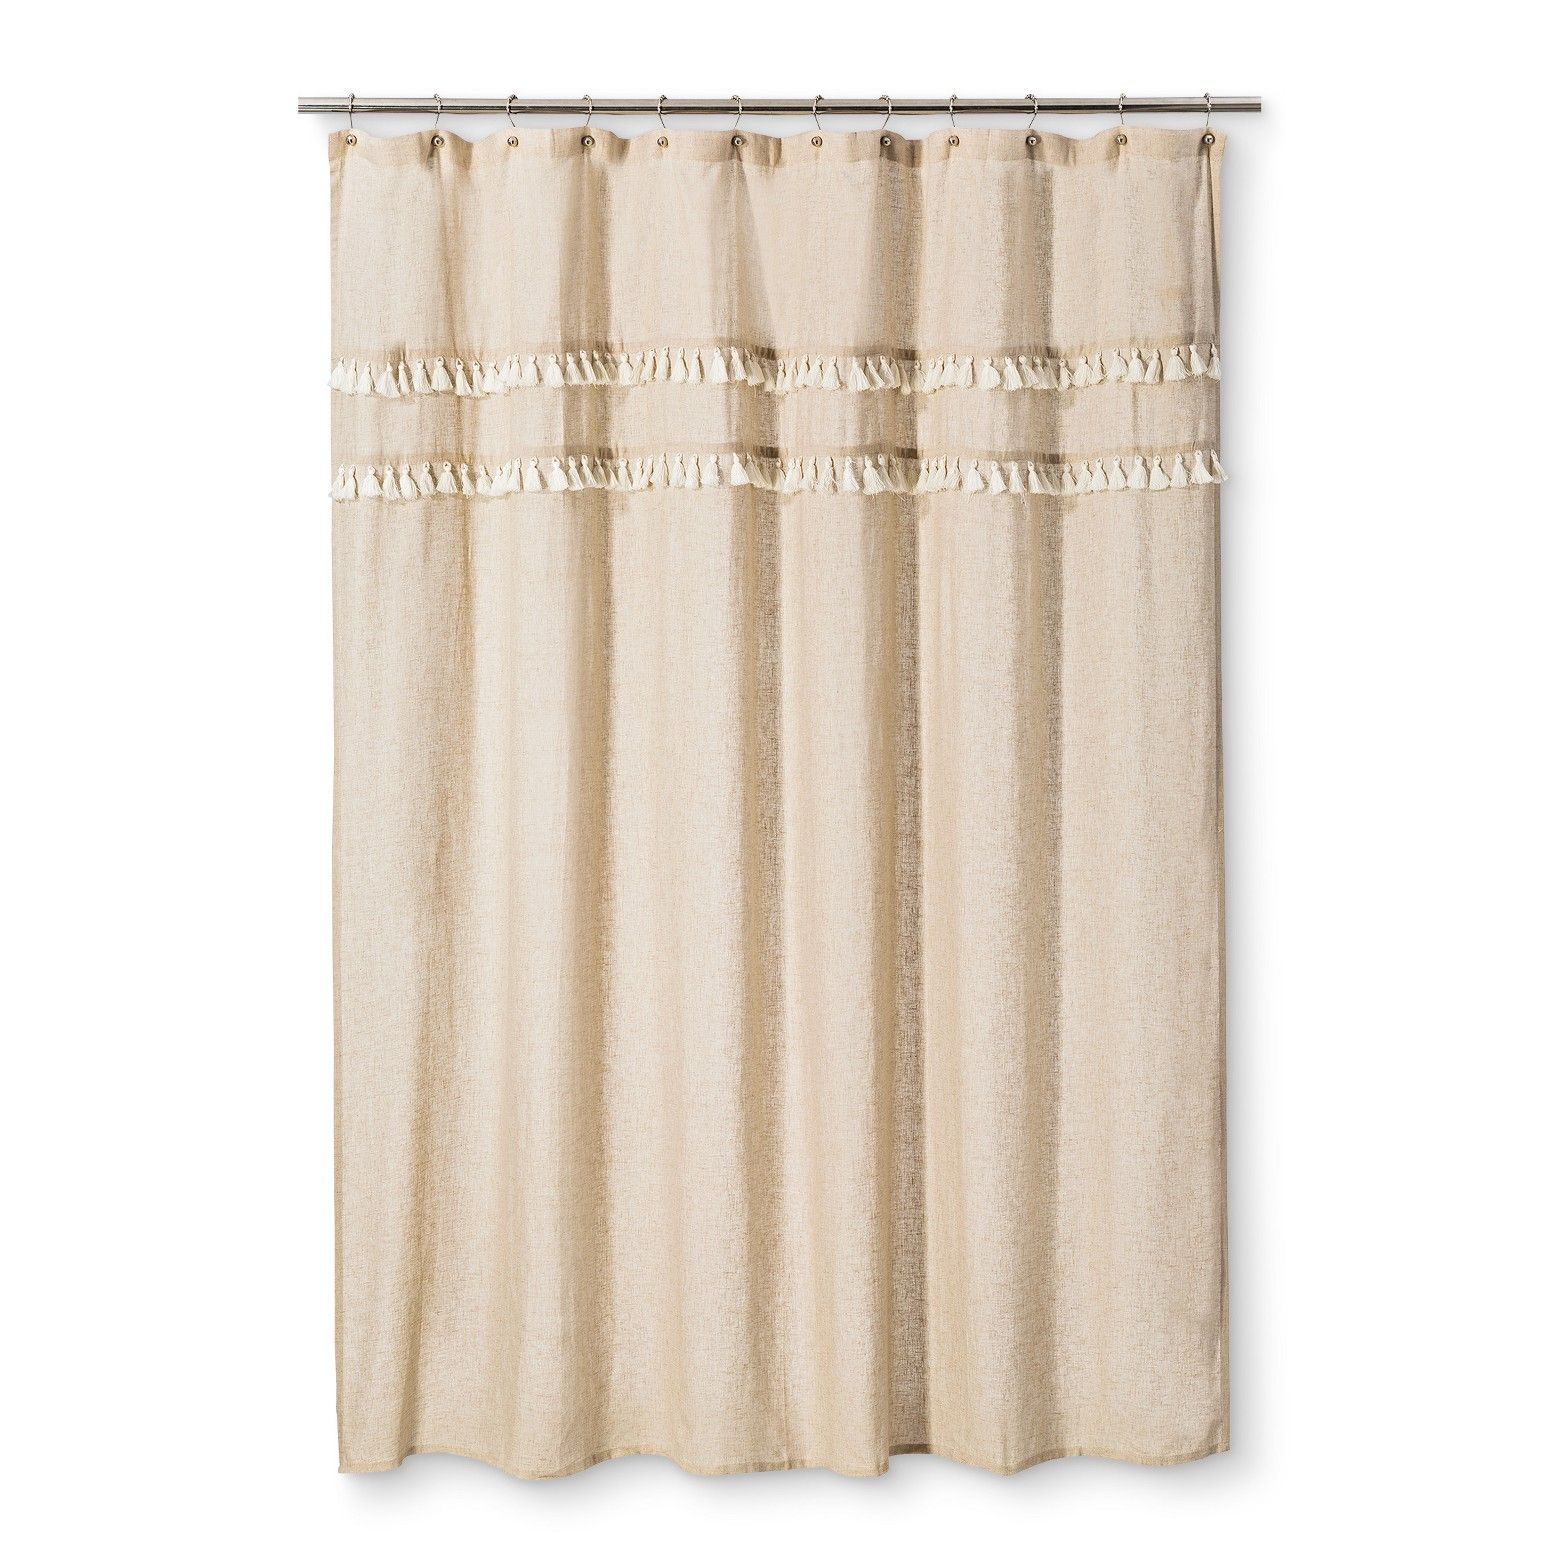 20 This threshold solid browen linen shower curtain has a